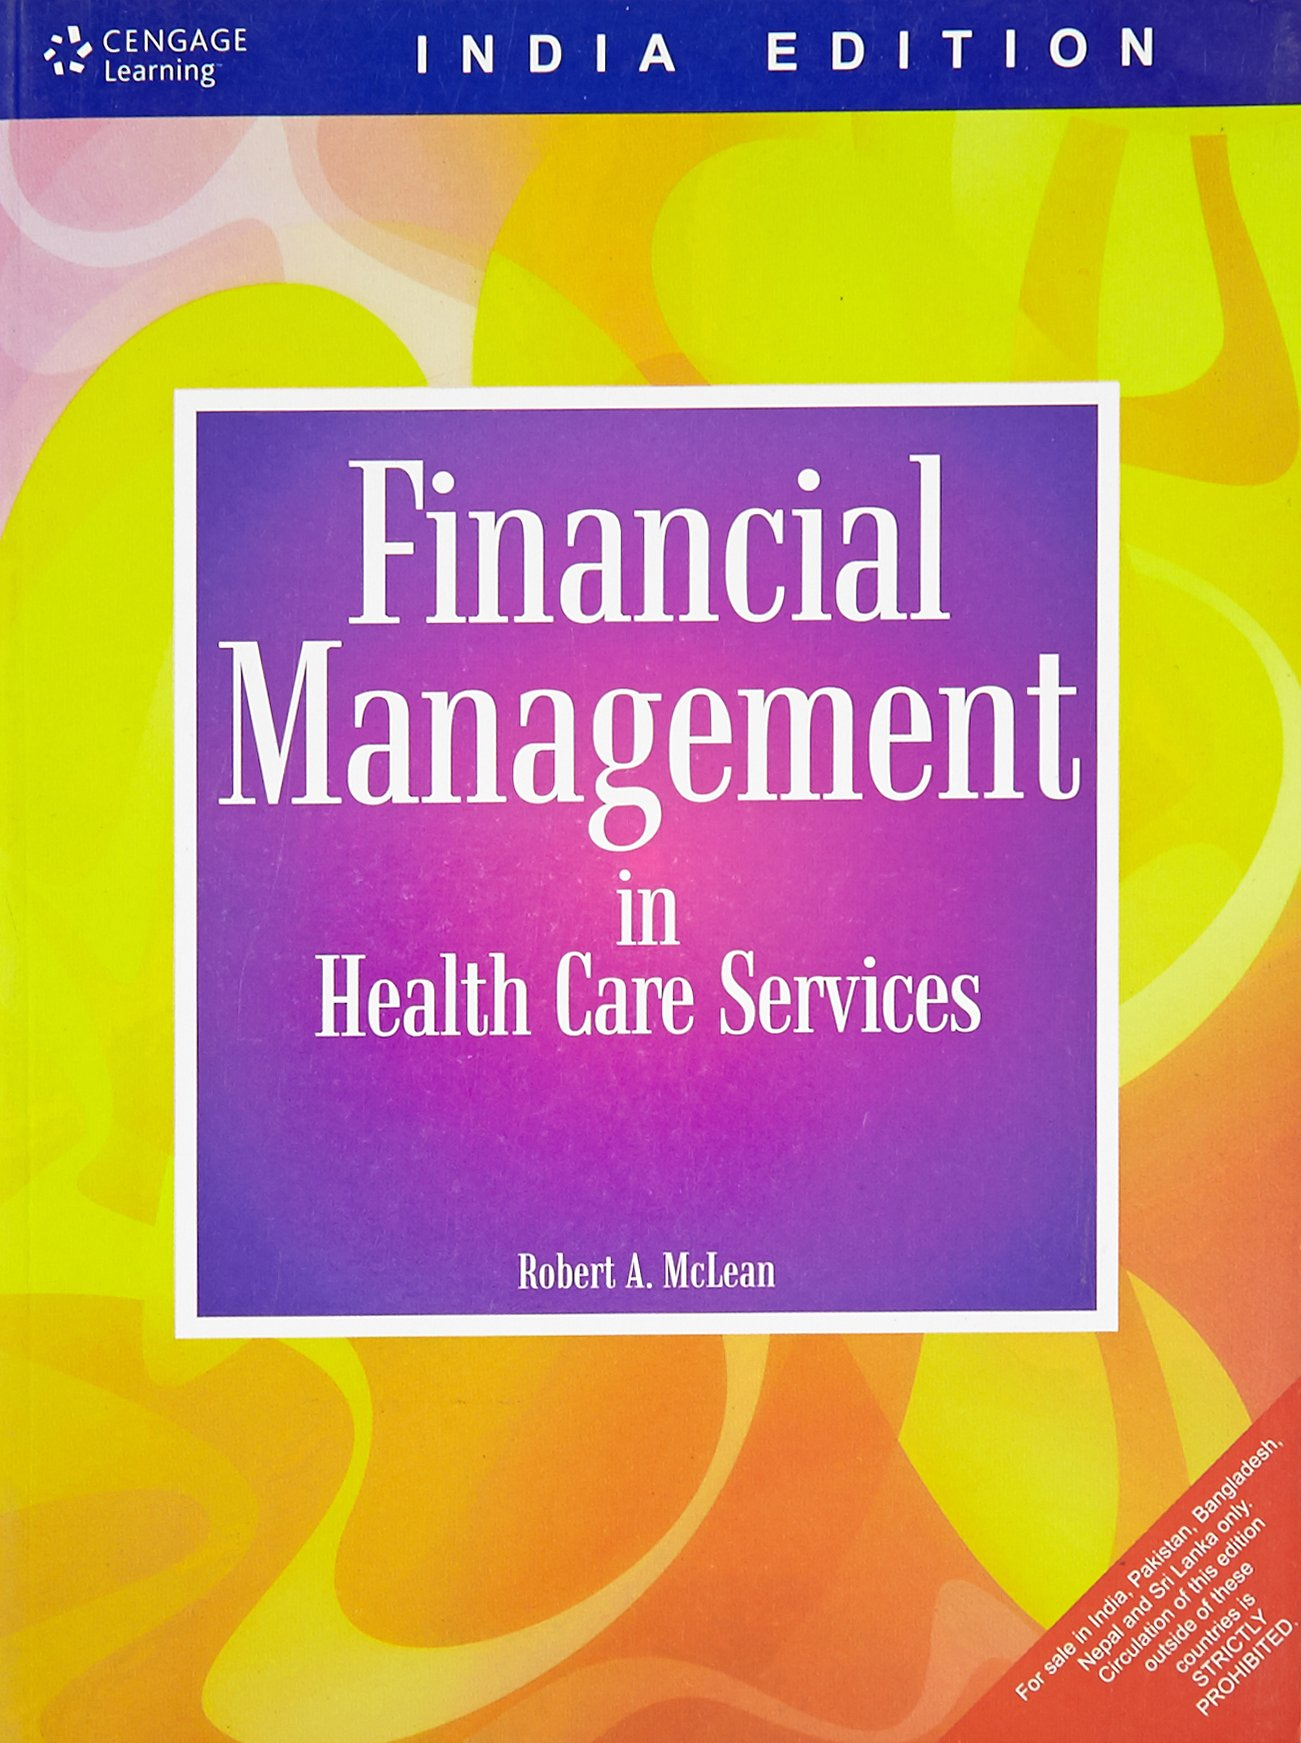 Financial Management in Health Care Services: Mclean: 9788131508206:  Amazon.com: Books